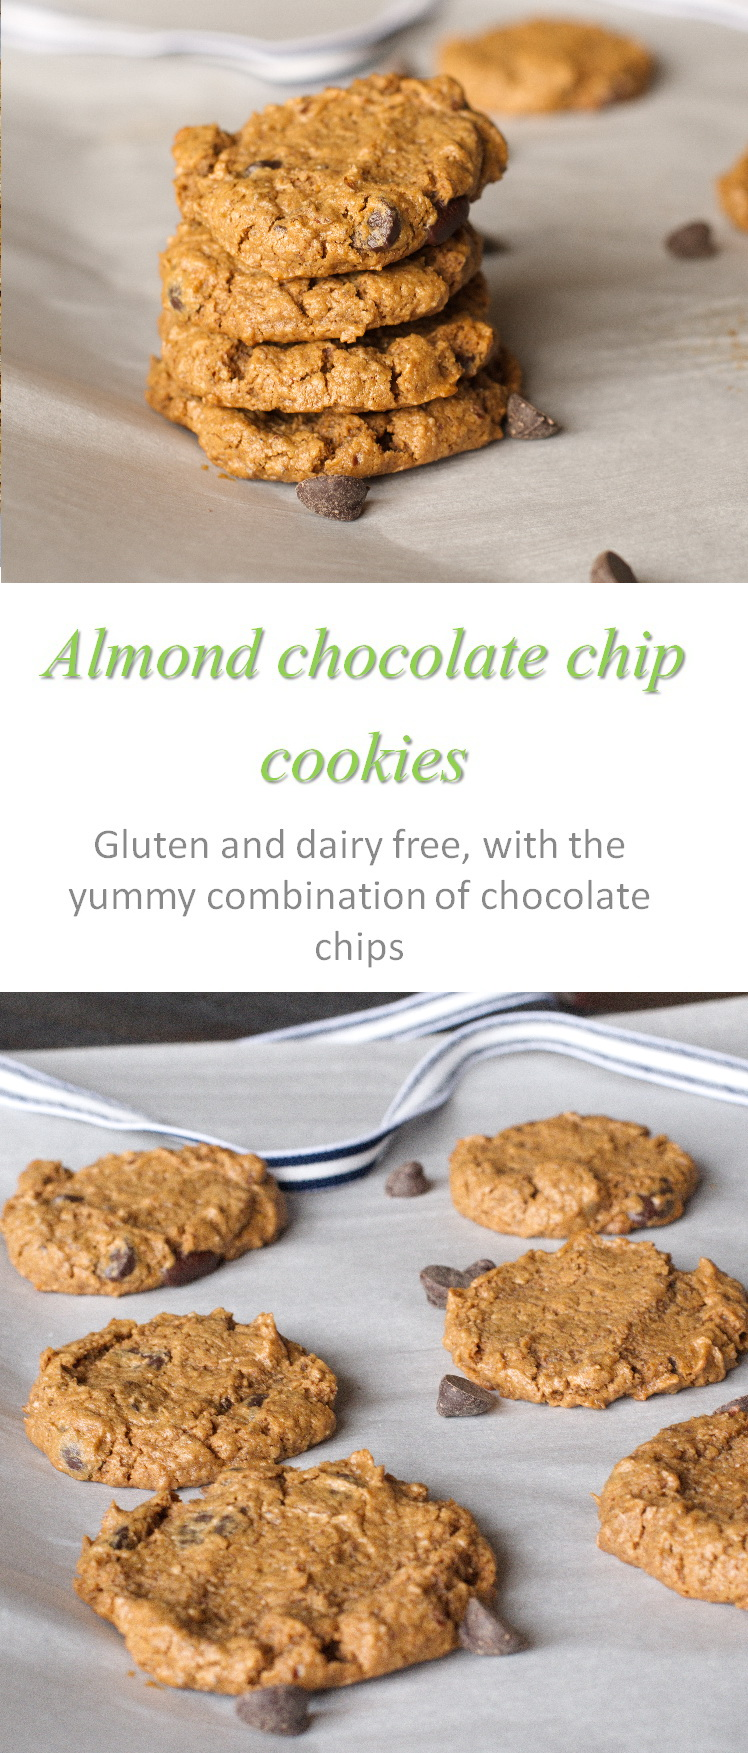 A different texture for flourless almond chocolate chip cookies, with bursts of chocolate chips and almond butter to tease your tastebuds. #cookies